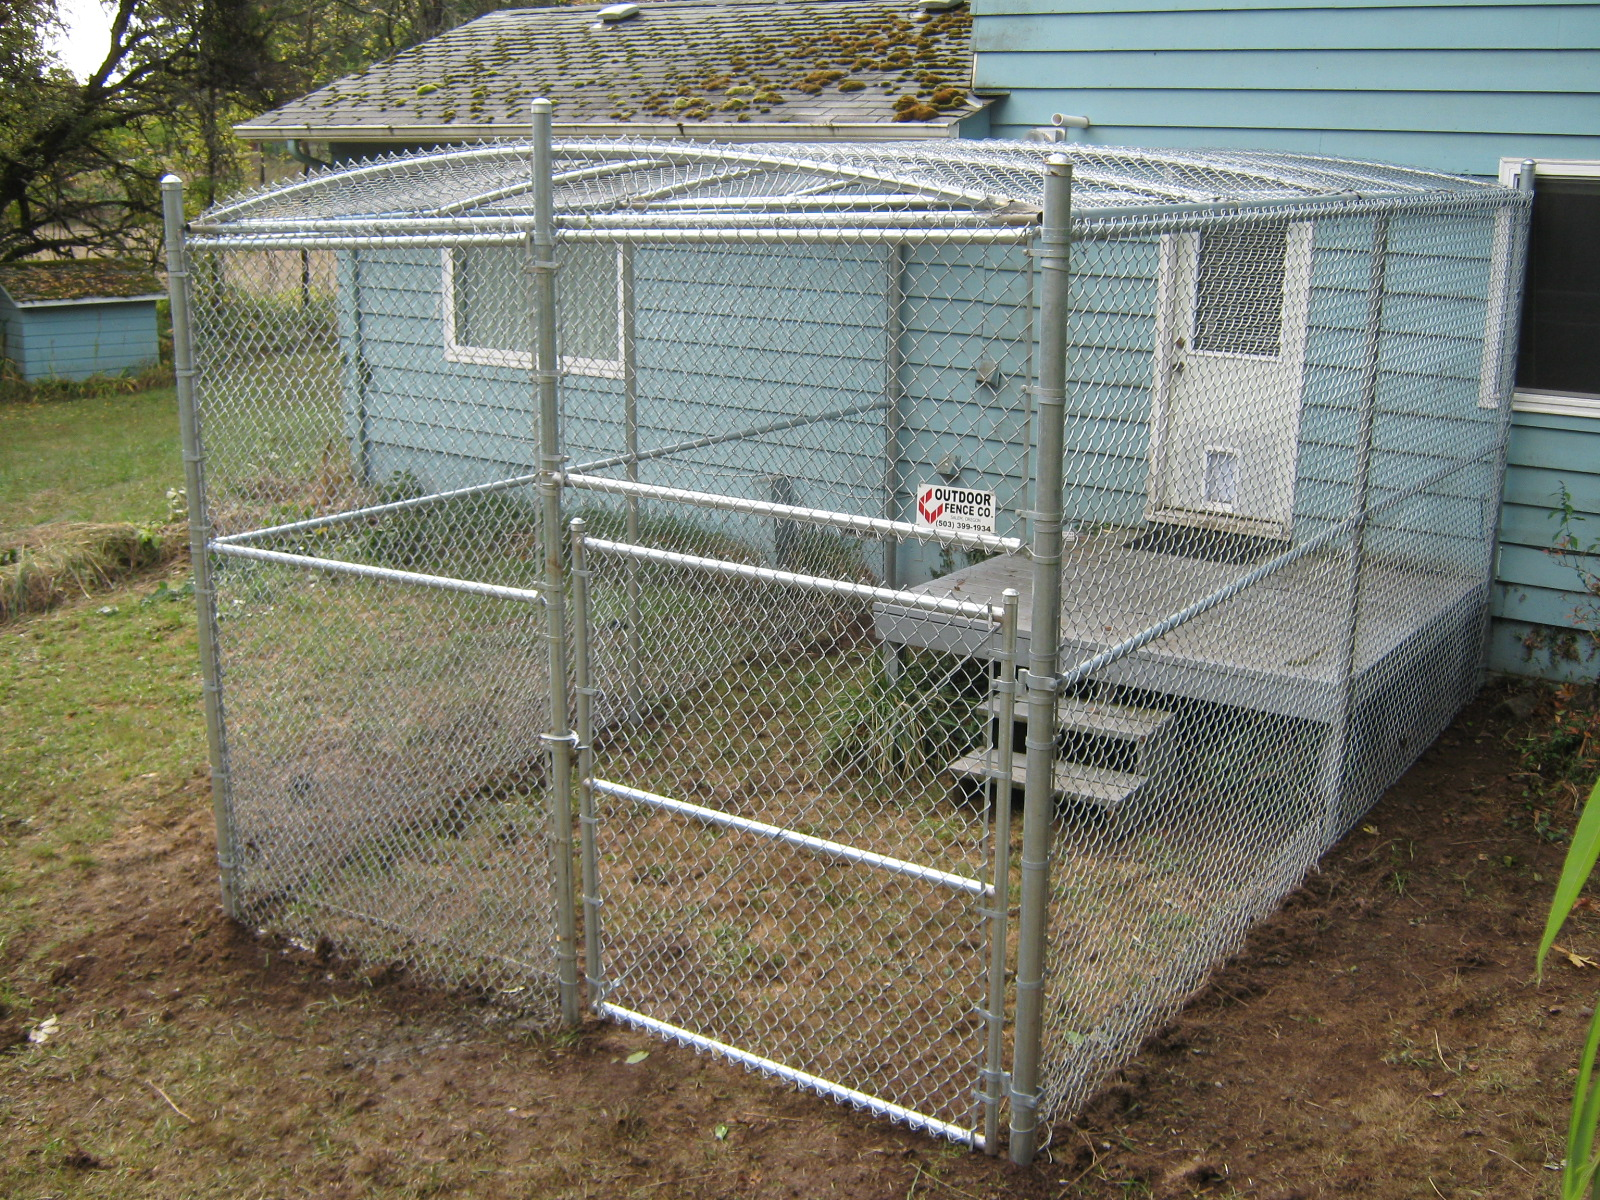 Backyard Dog Kennel Ideas : Pin Dog Kennel Design Ideas Page 3 on Pinterest